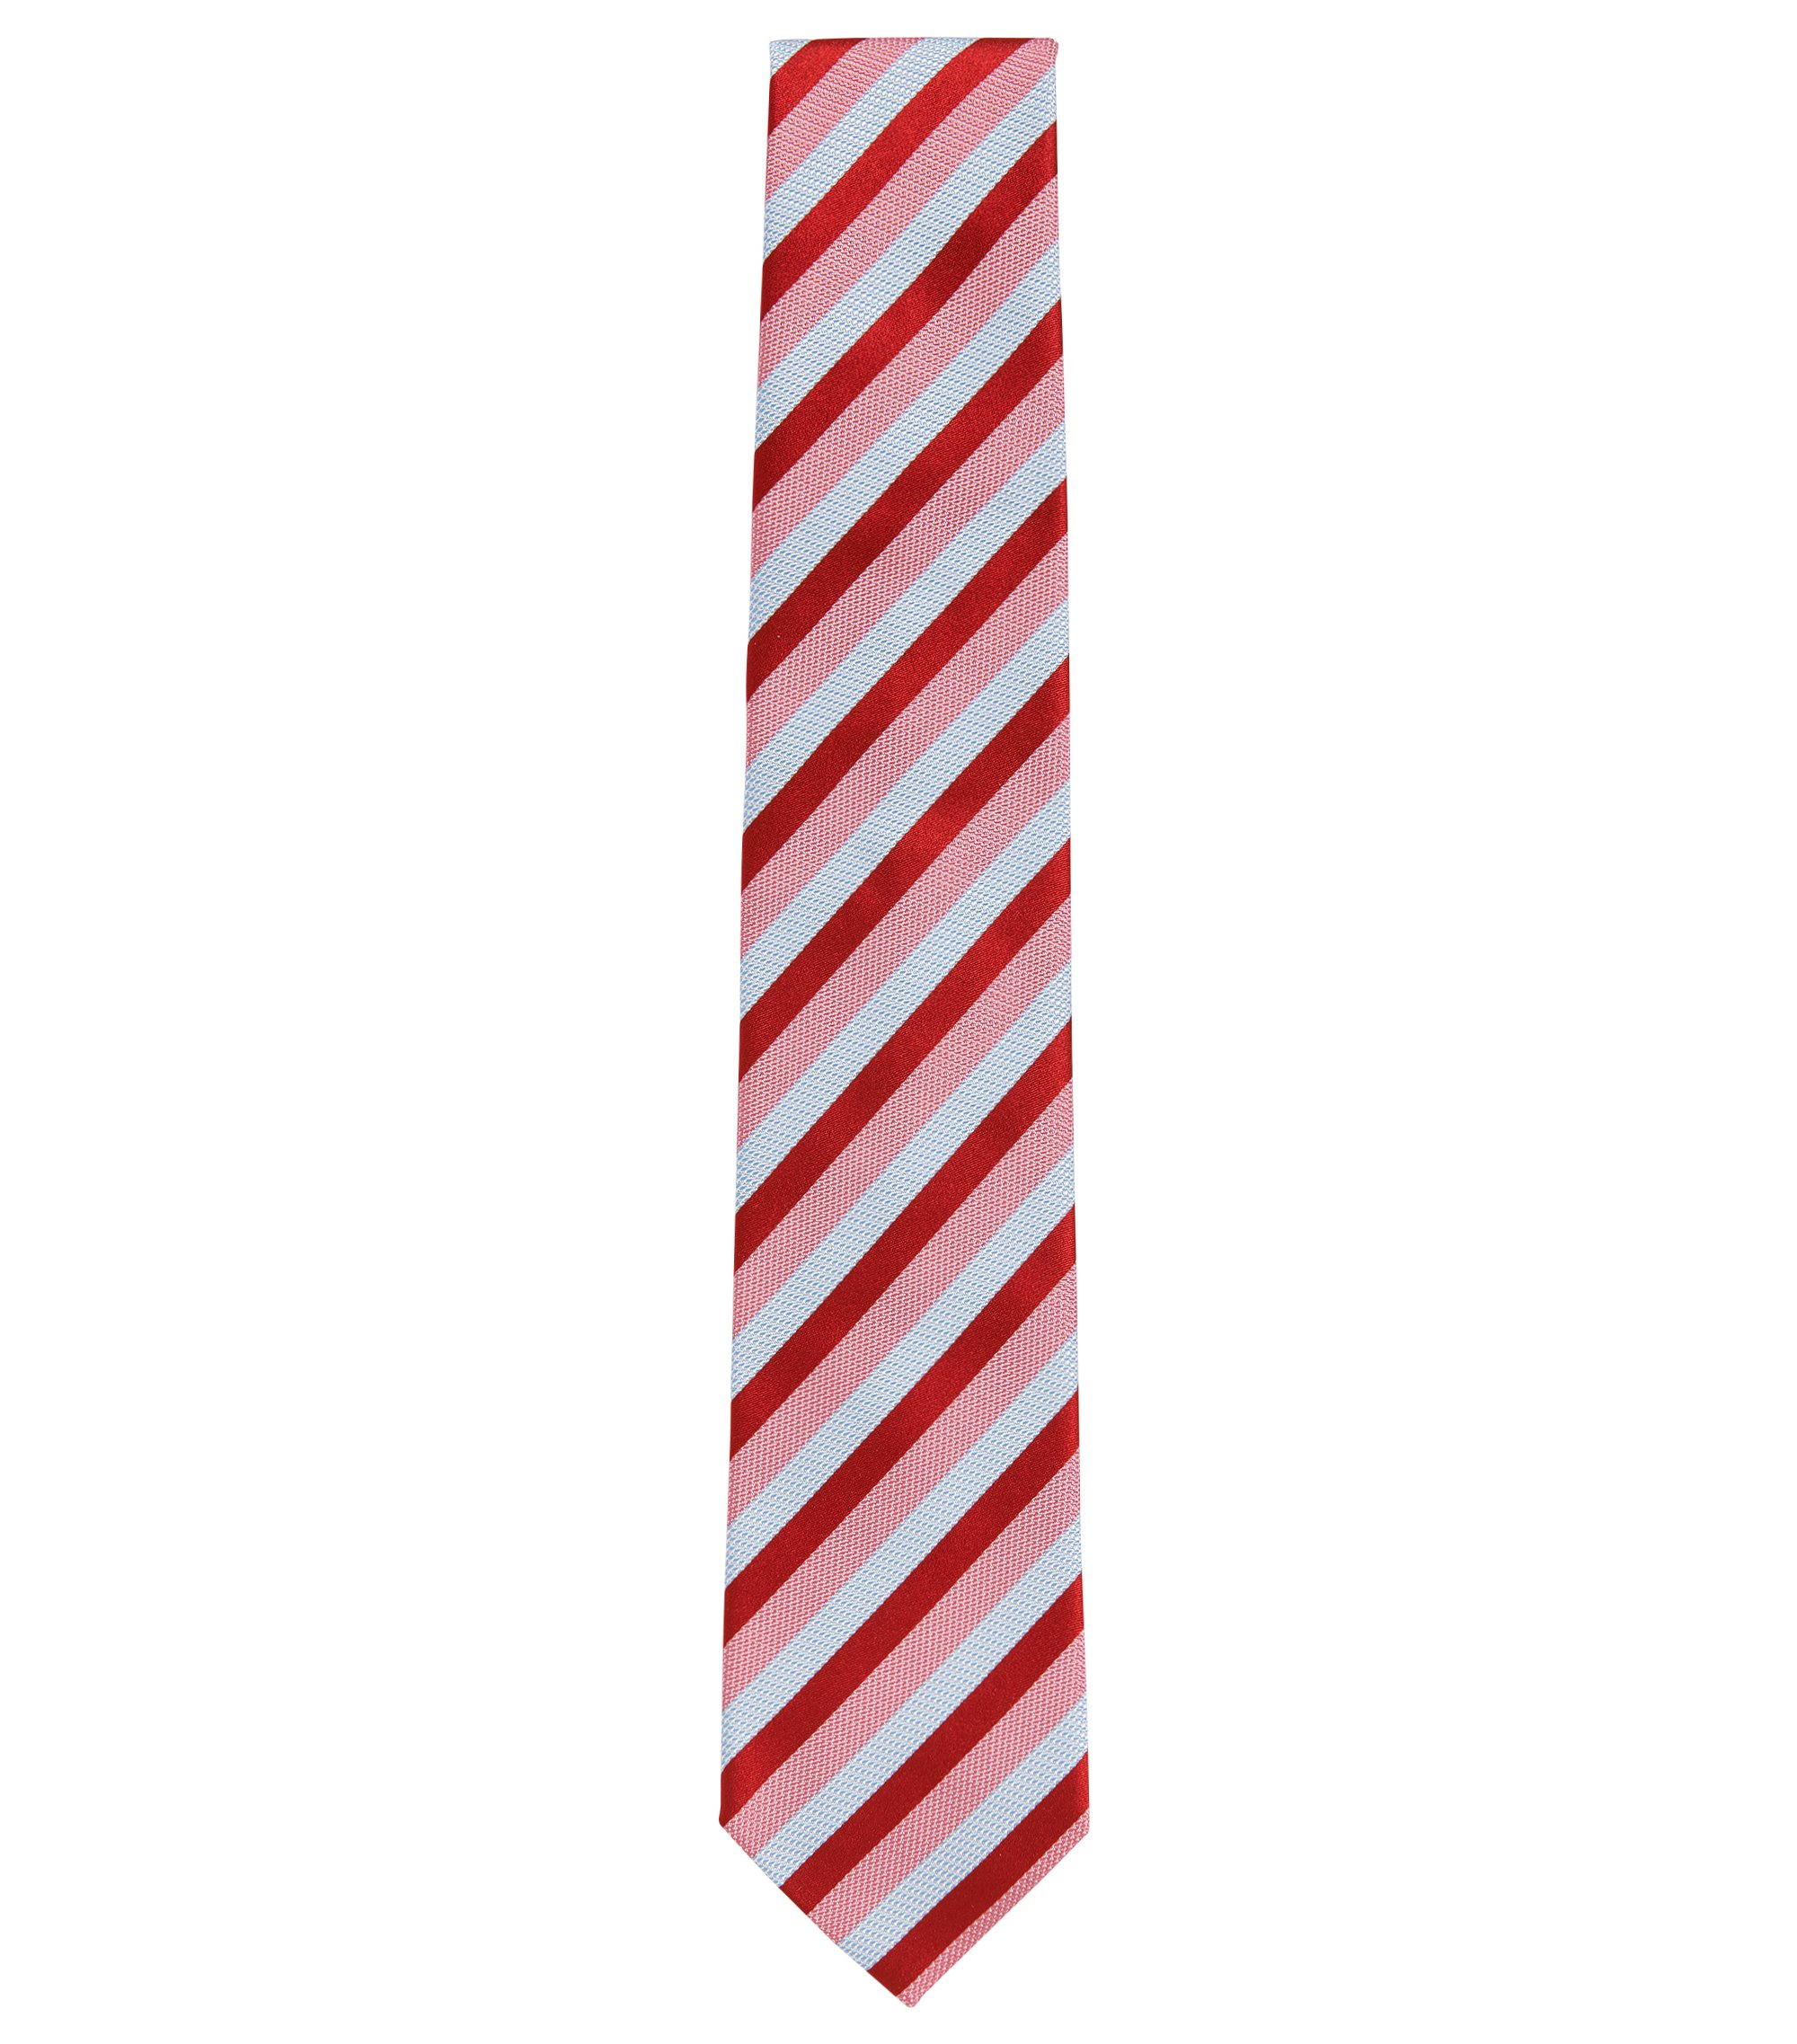 Patterned Silk Tie, Red